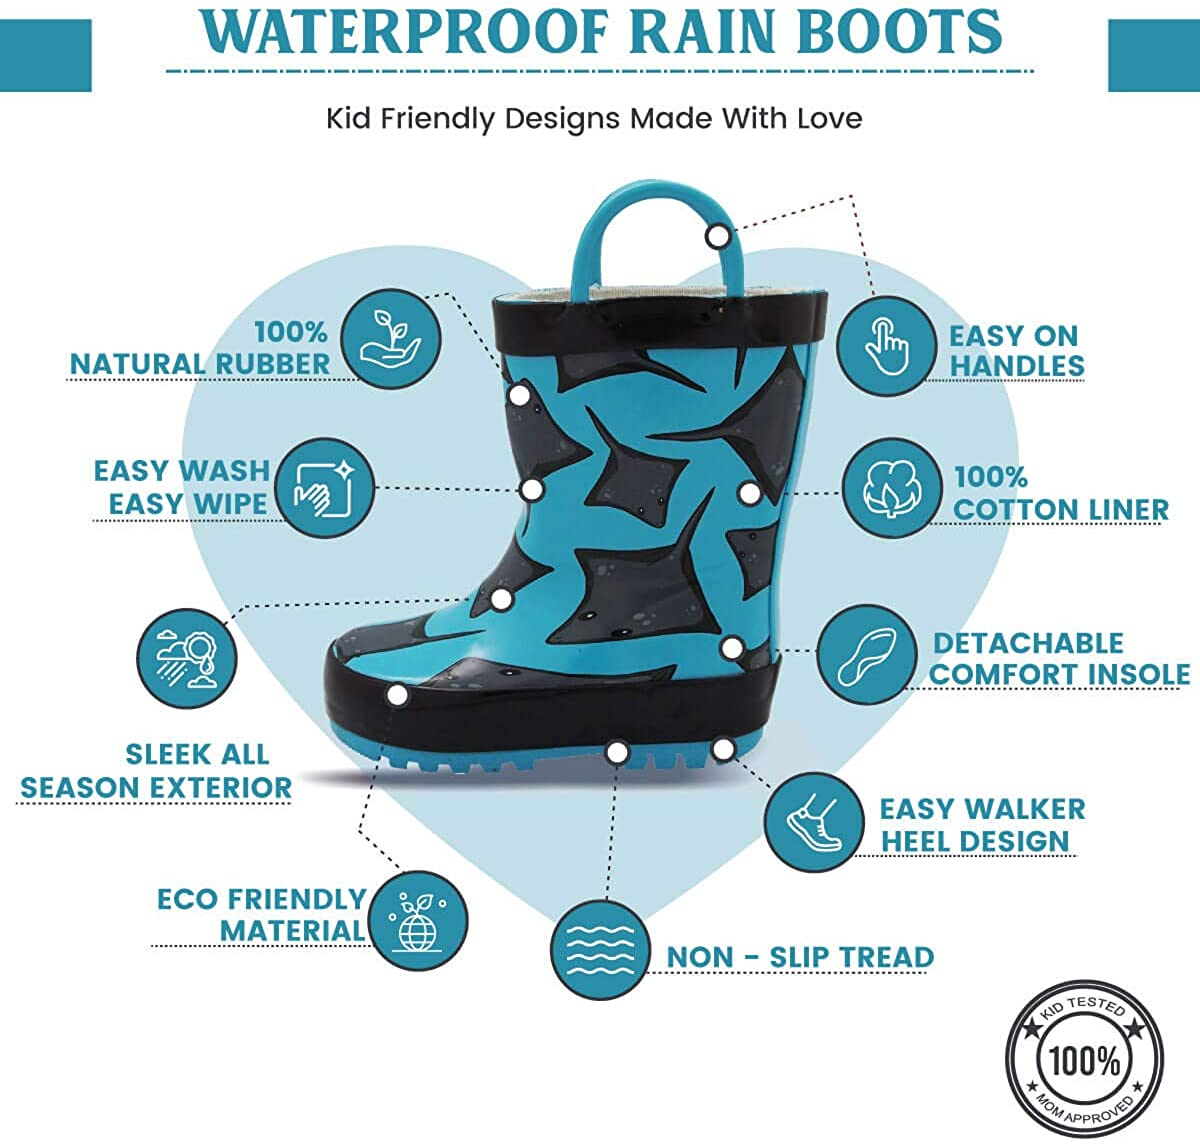 NORTY Waterproof Rubber Rain Boots for Kids Boys and Girls Solid /& Printed Rainboots for Toddlers and Kids